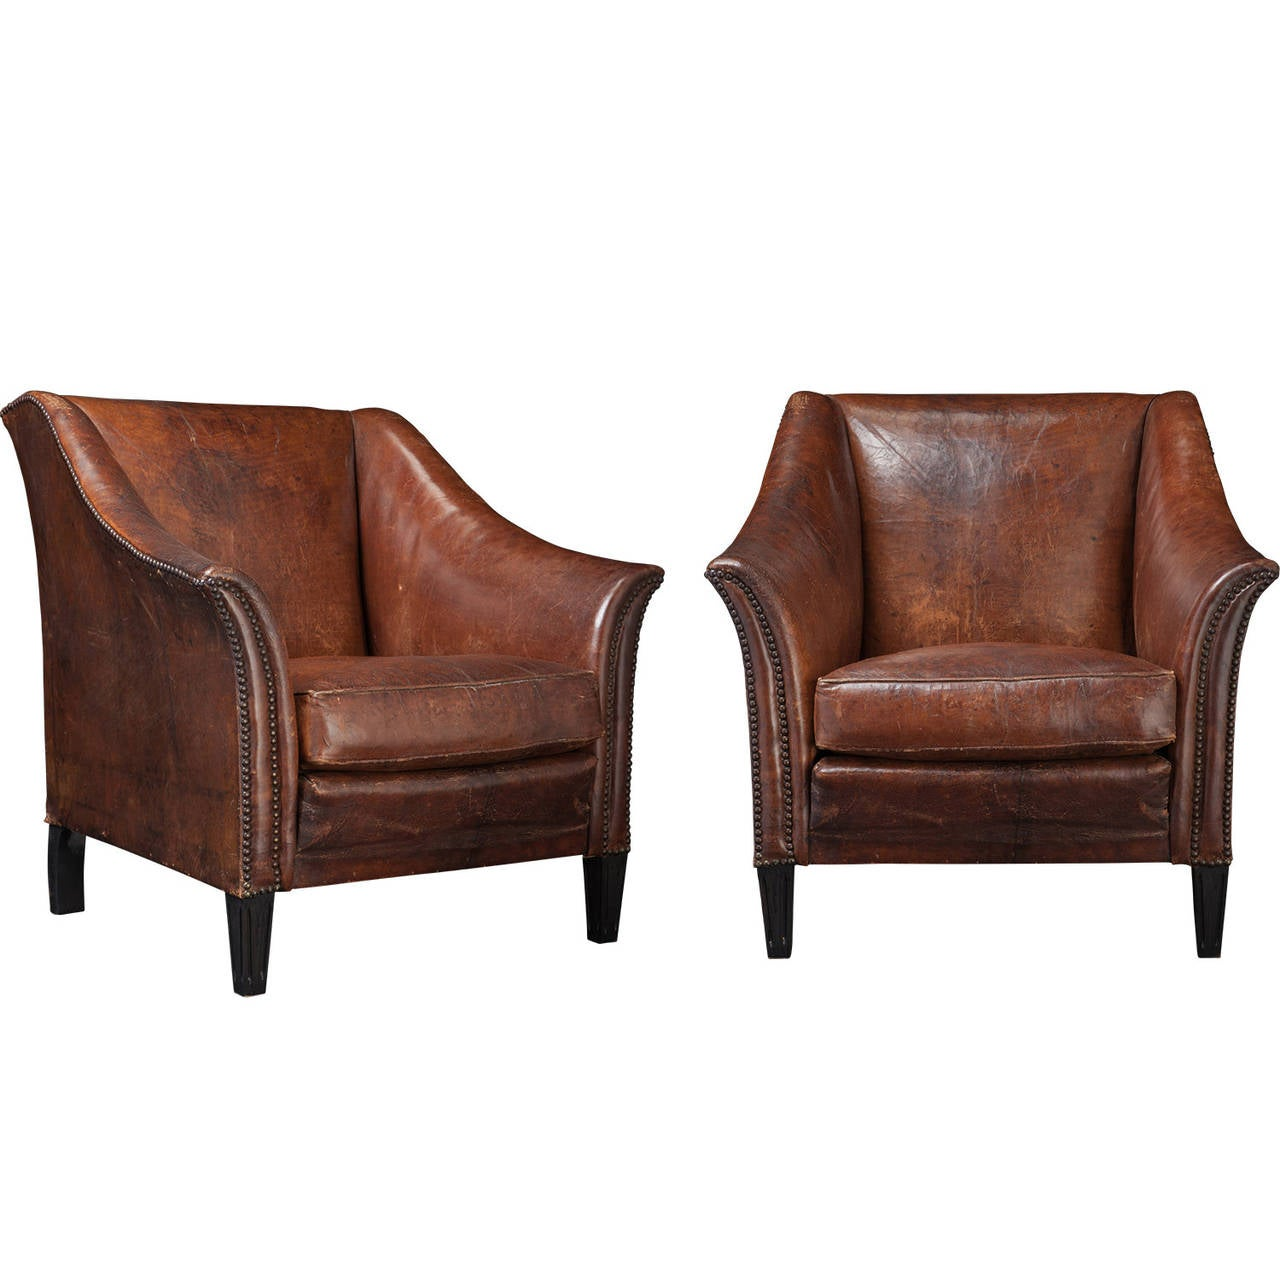 Pair of Leather Club Chairs at 1stdibs